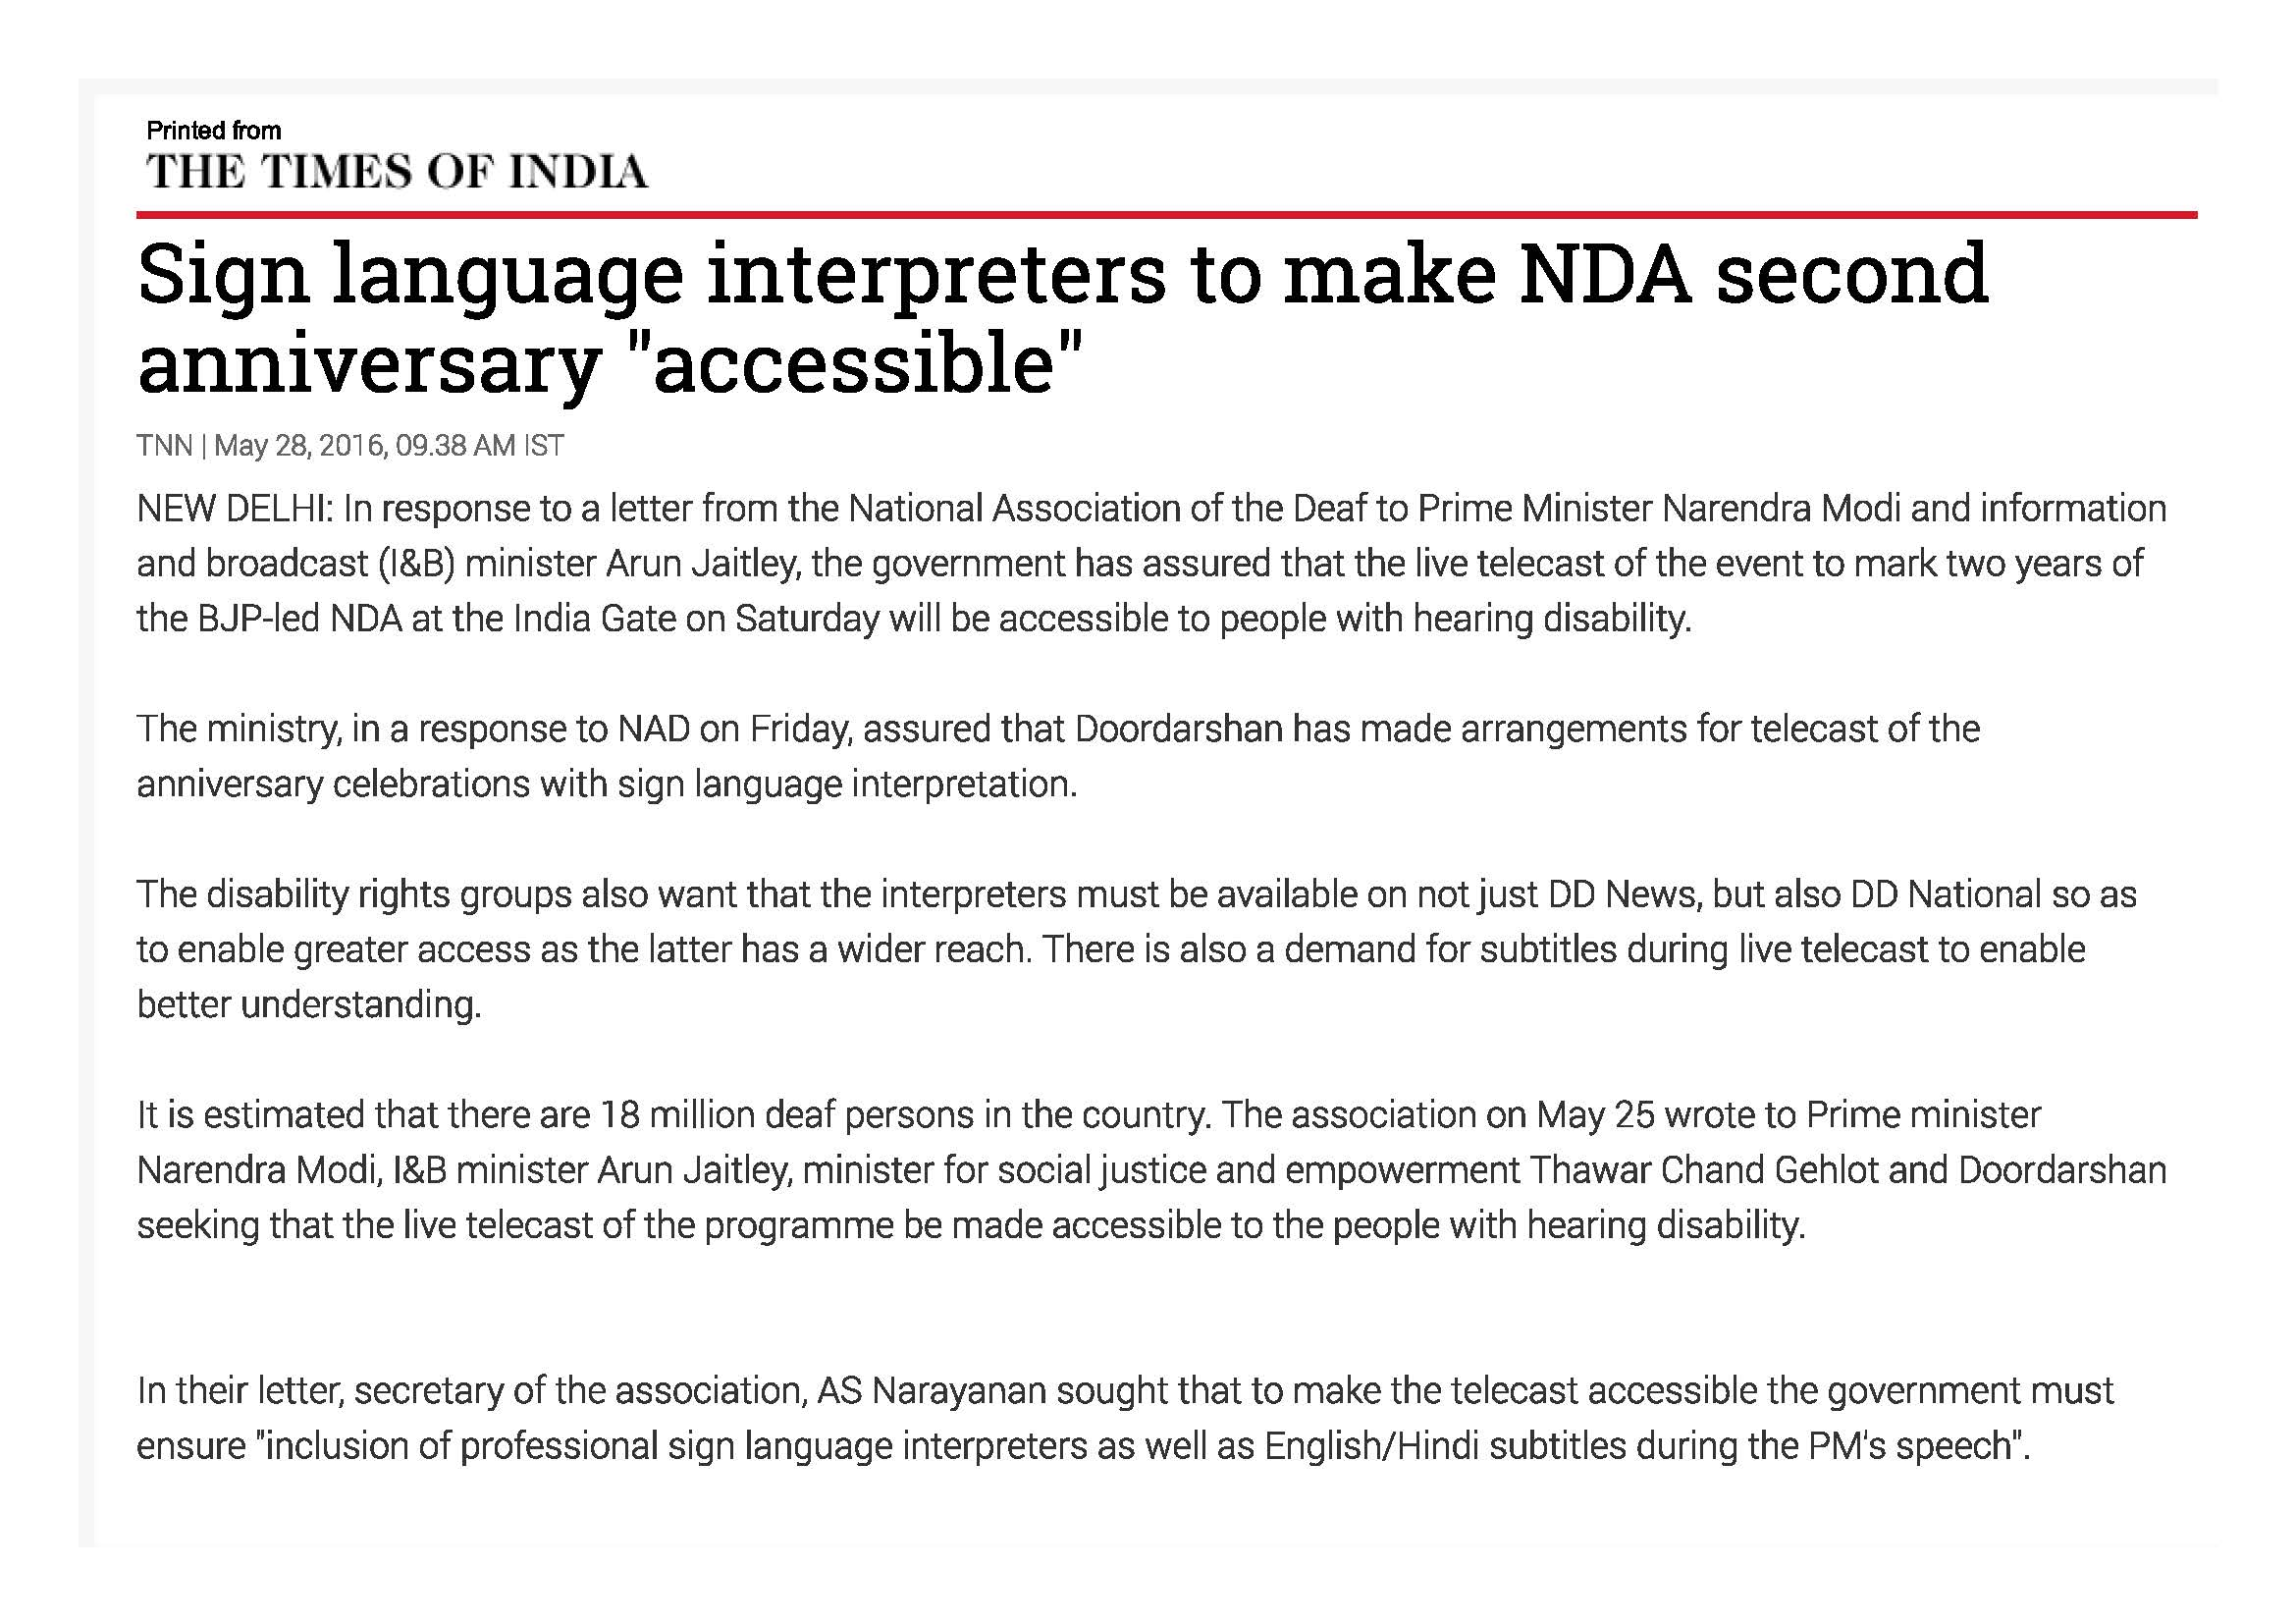 Sign language interpreters to make NDA second anniversary accessible